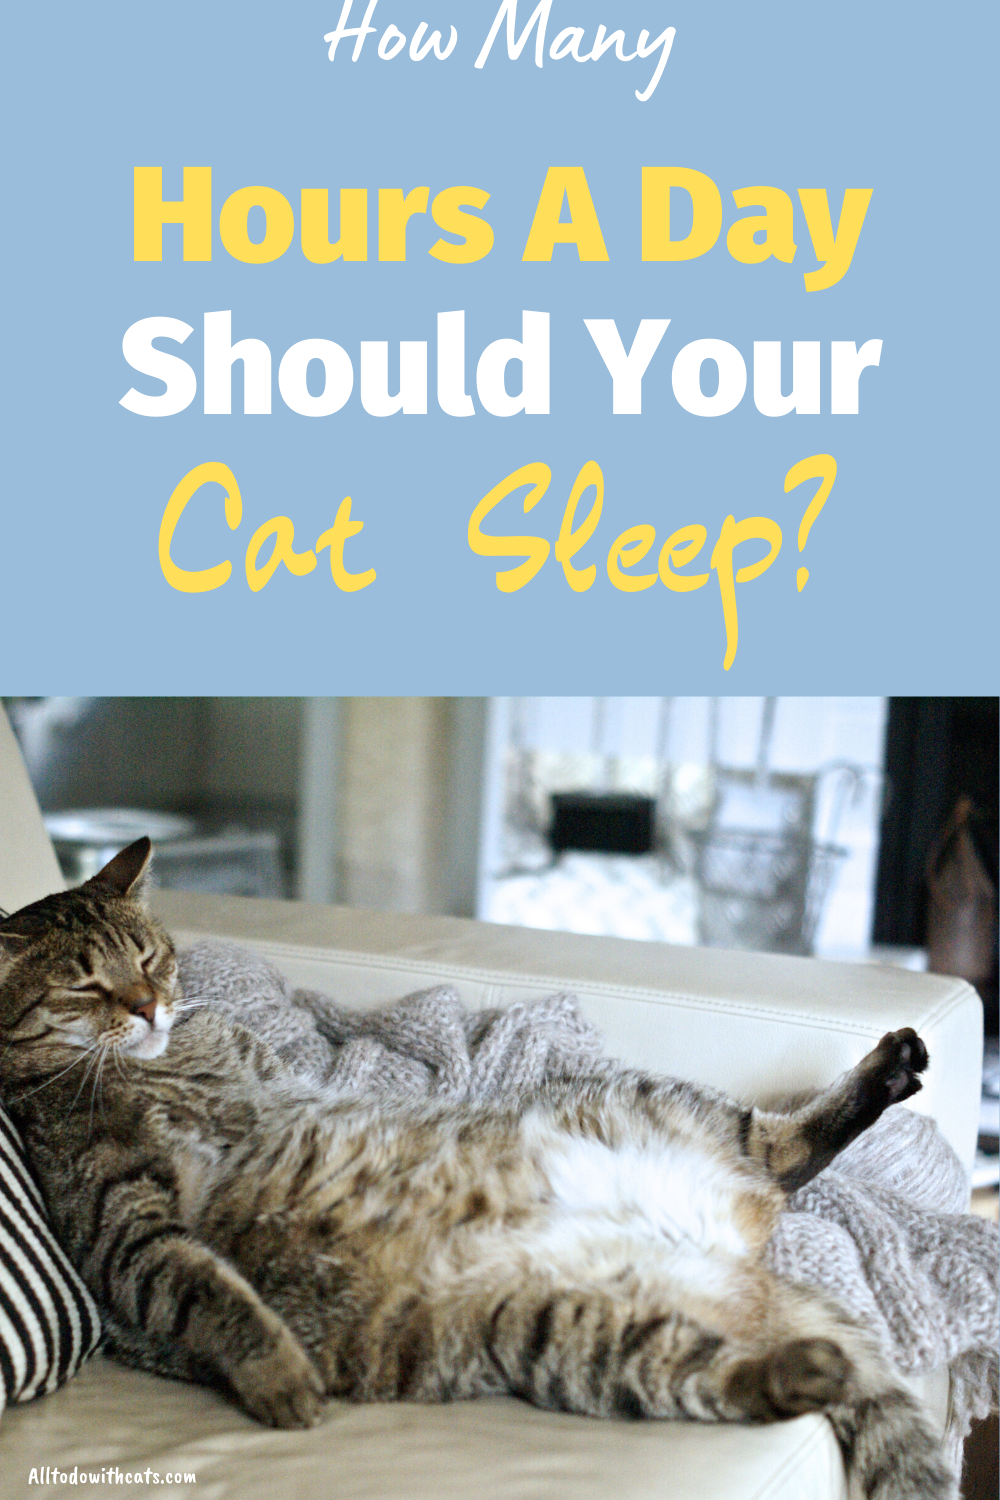 Why Do Cats Sleep So Much Discover Amazing Facts In 2020 Cat Sleeping Cat Care Tips Cat Behavior